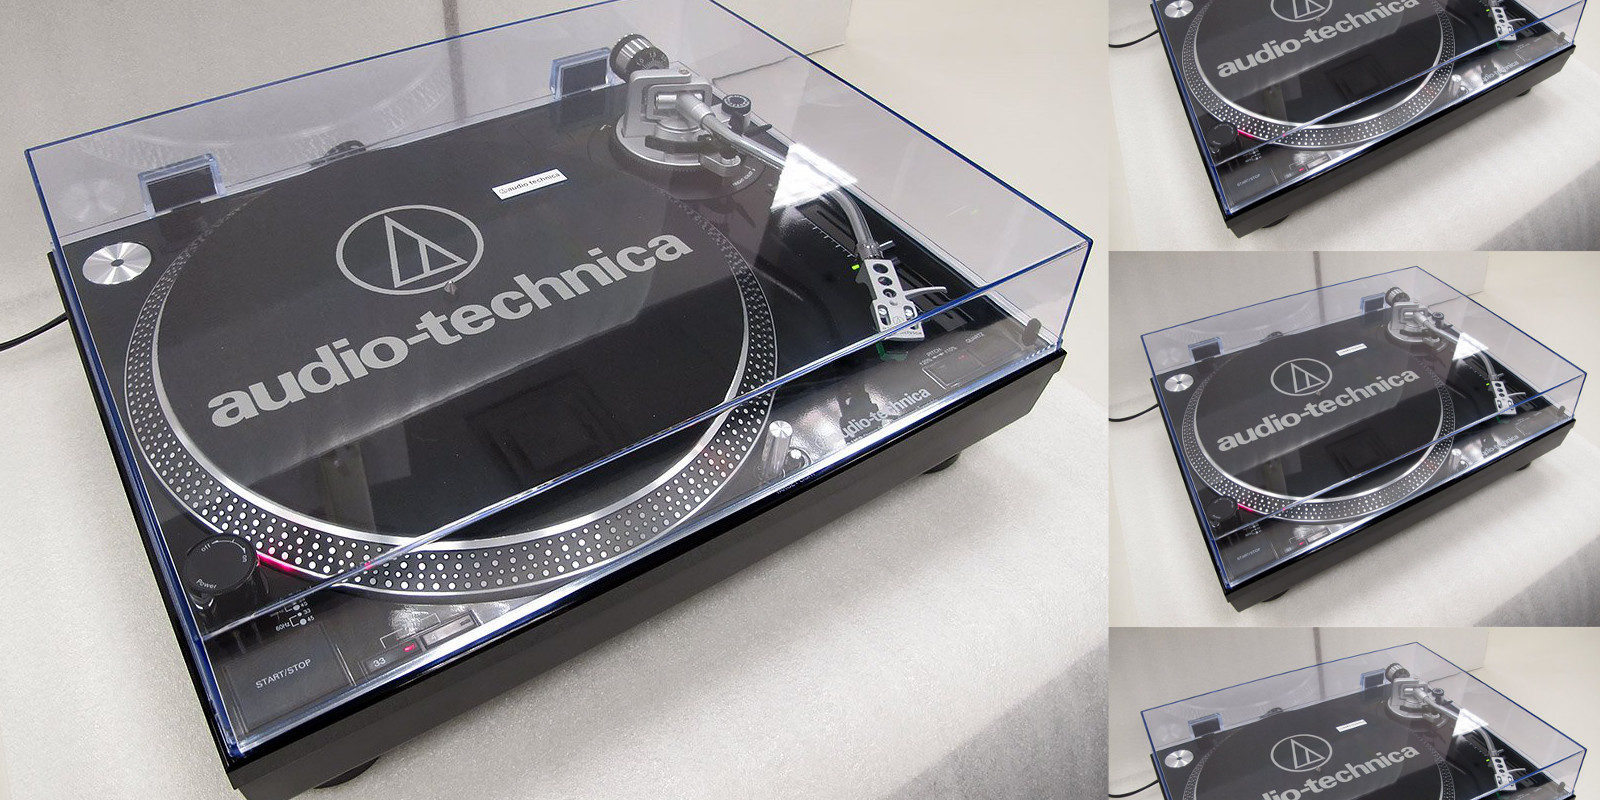 Audio-Technica's highly-rated Pro USB Turntable drops to $229 (Reg